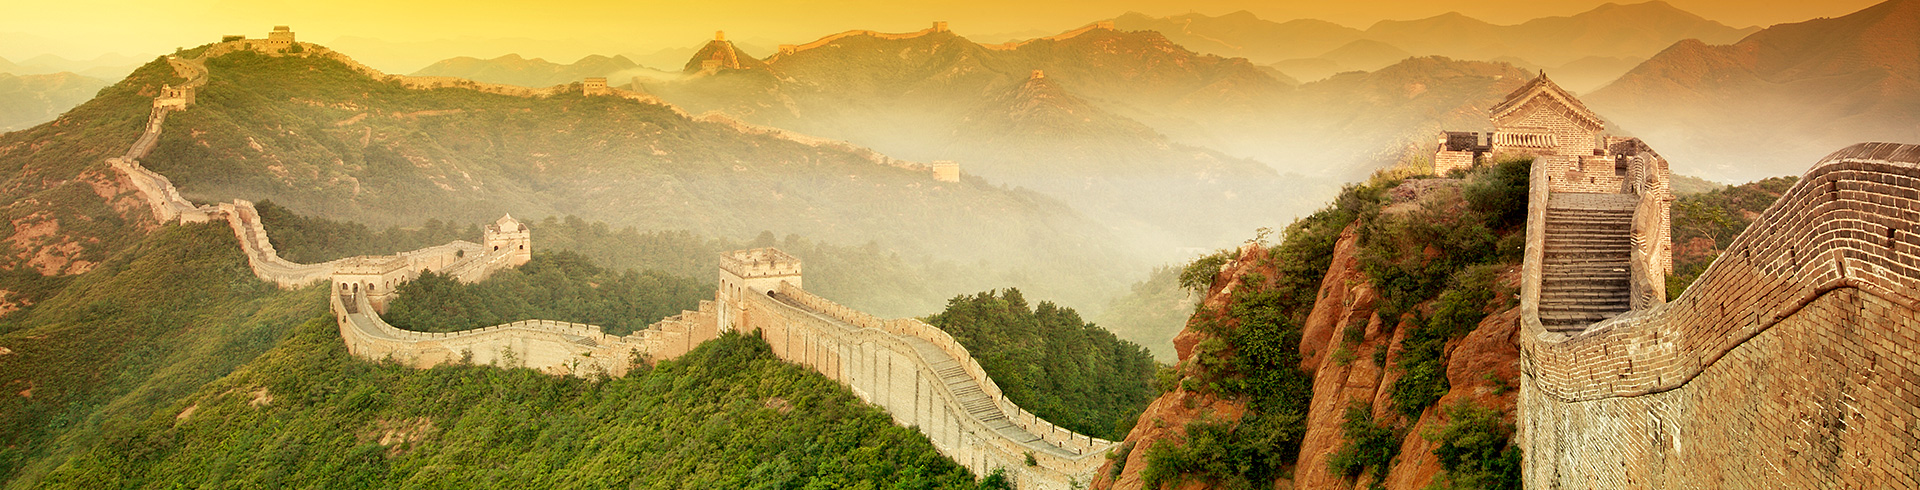 Discounted flight tickets to China - IFlyFirstClass